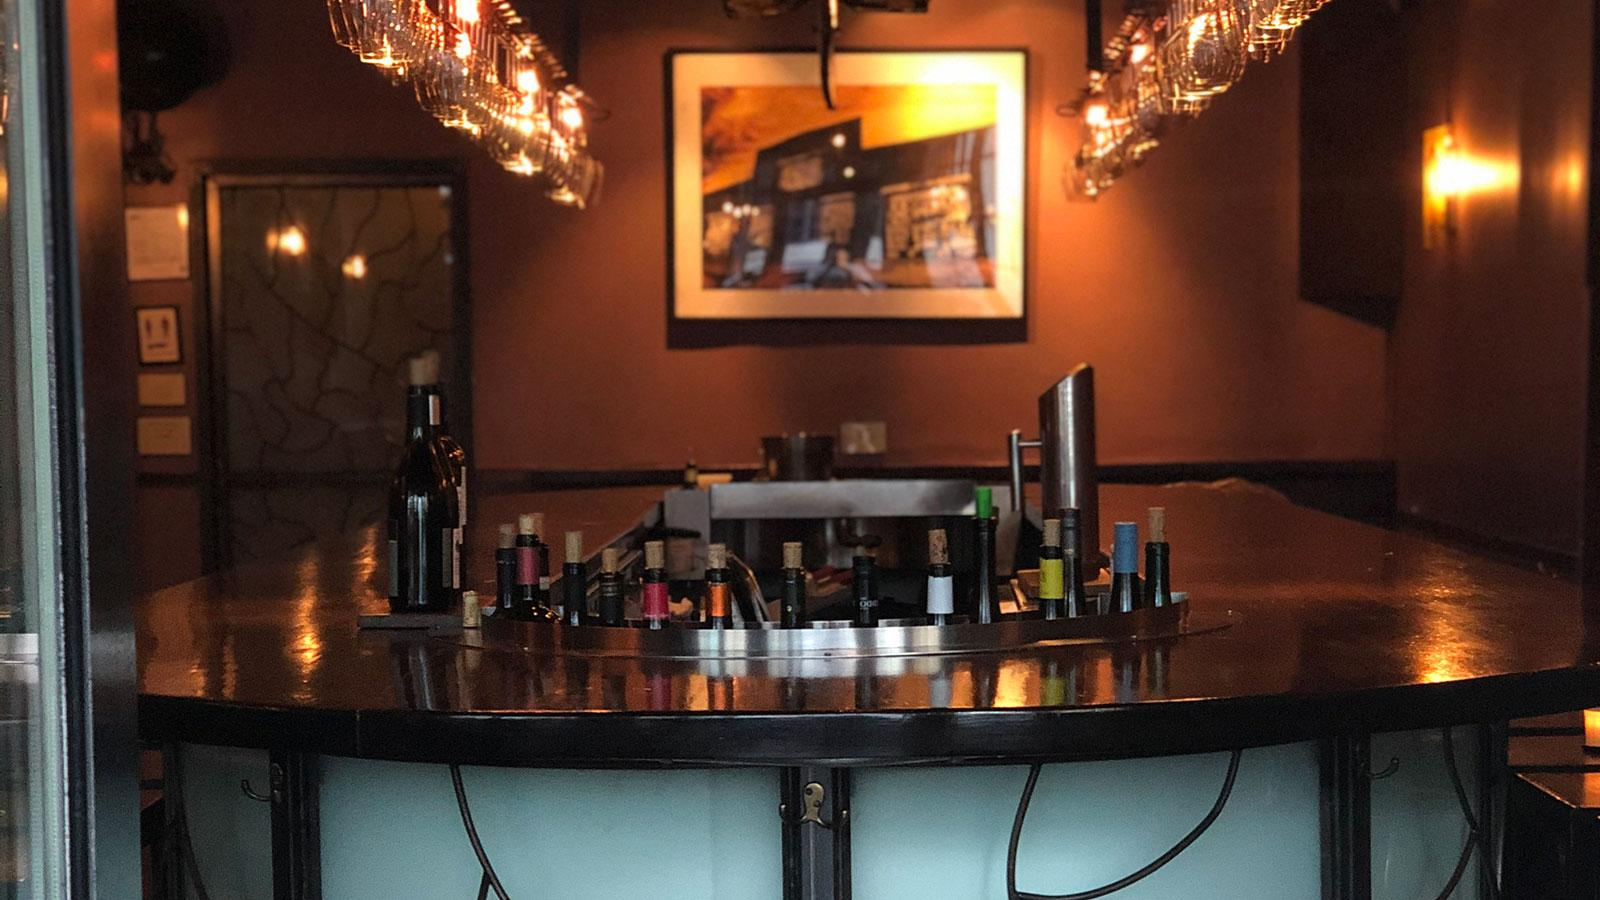 Bar with bottles behind it